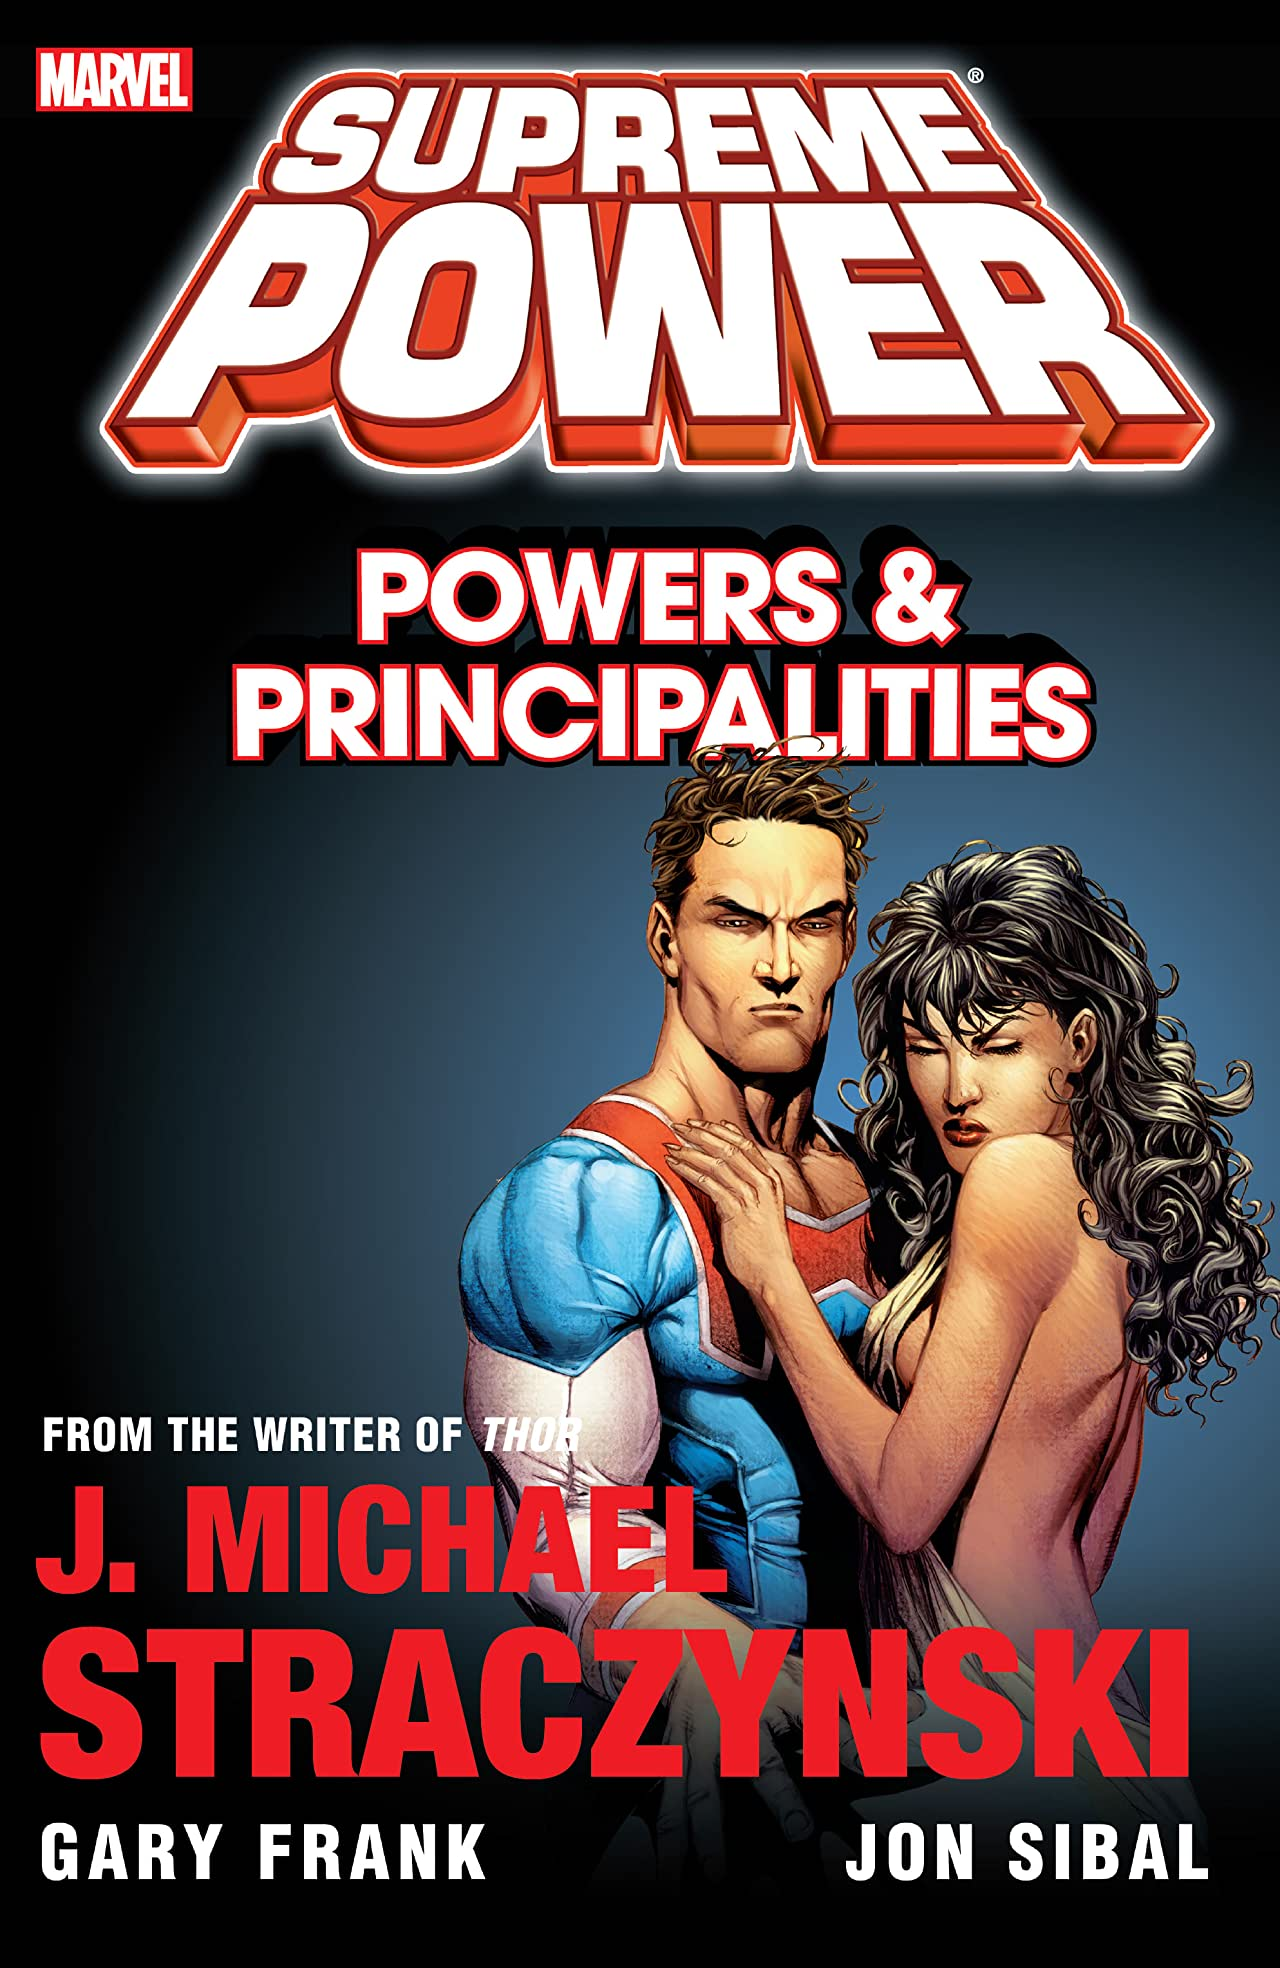 Supreme Power: Powers & Principalities